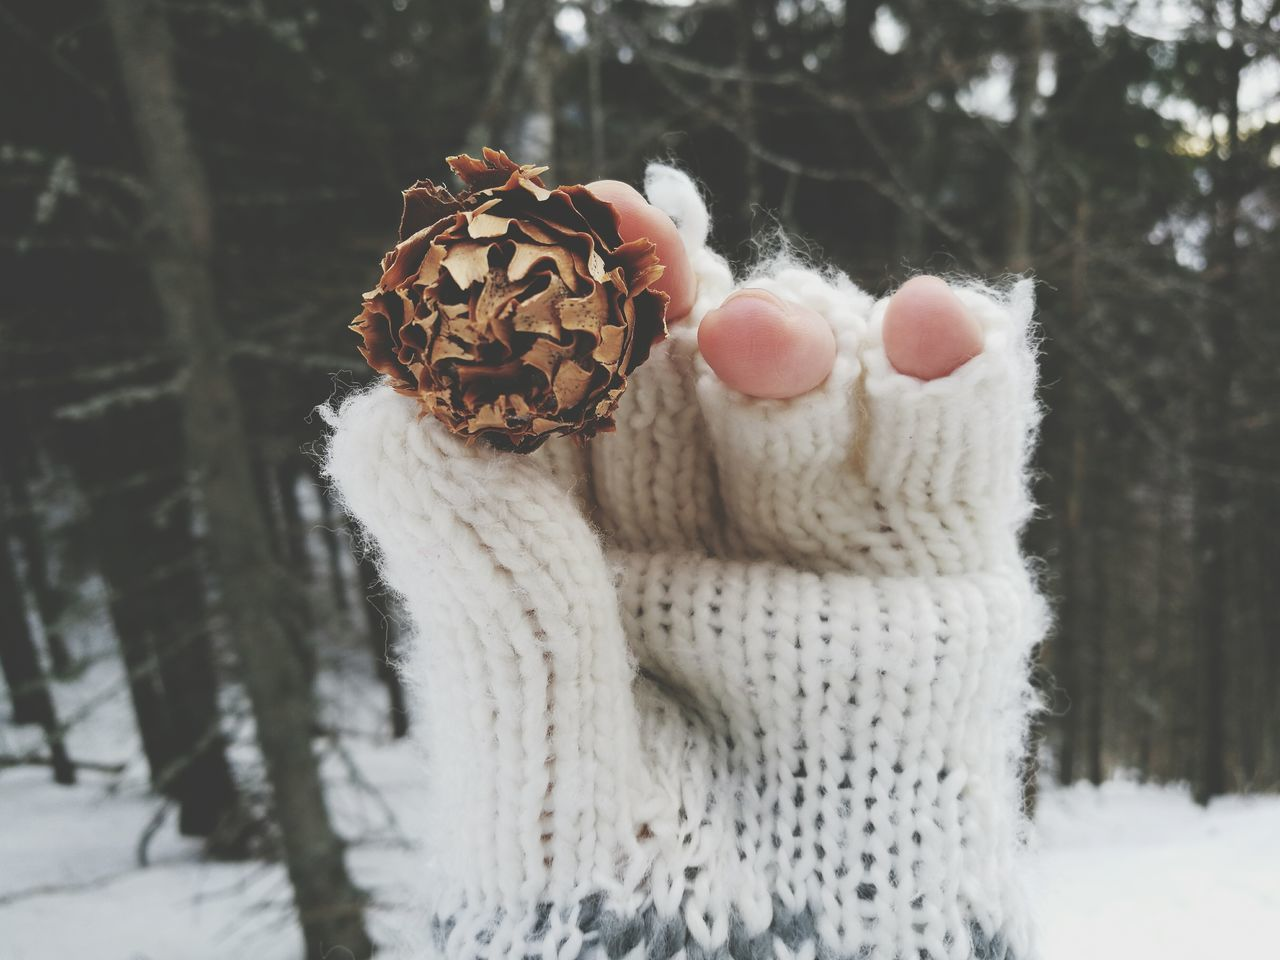 Winter Snow Cold Temperature Nature Tree Outdoors Close-up Winter Pine Cone Glove Winter Glove Warm Clothing The Great Outdoors - 2017 EyeEm Awards